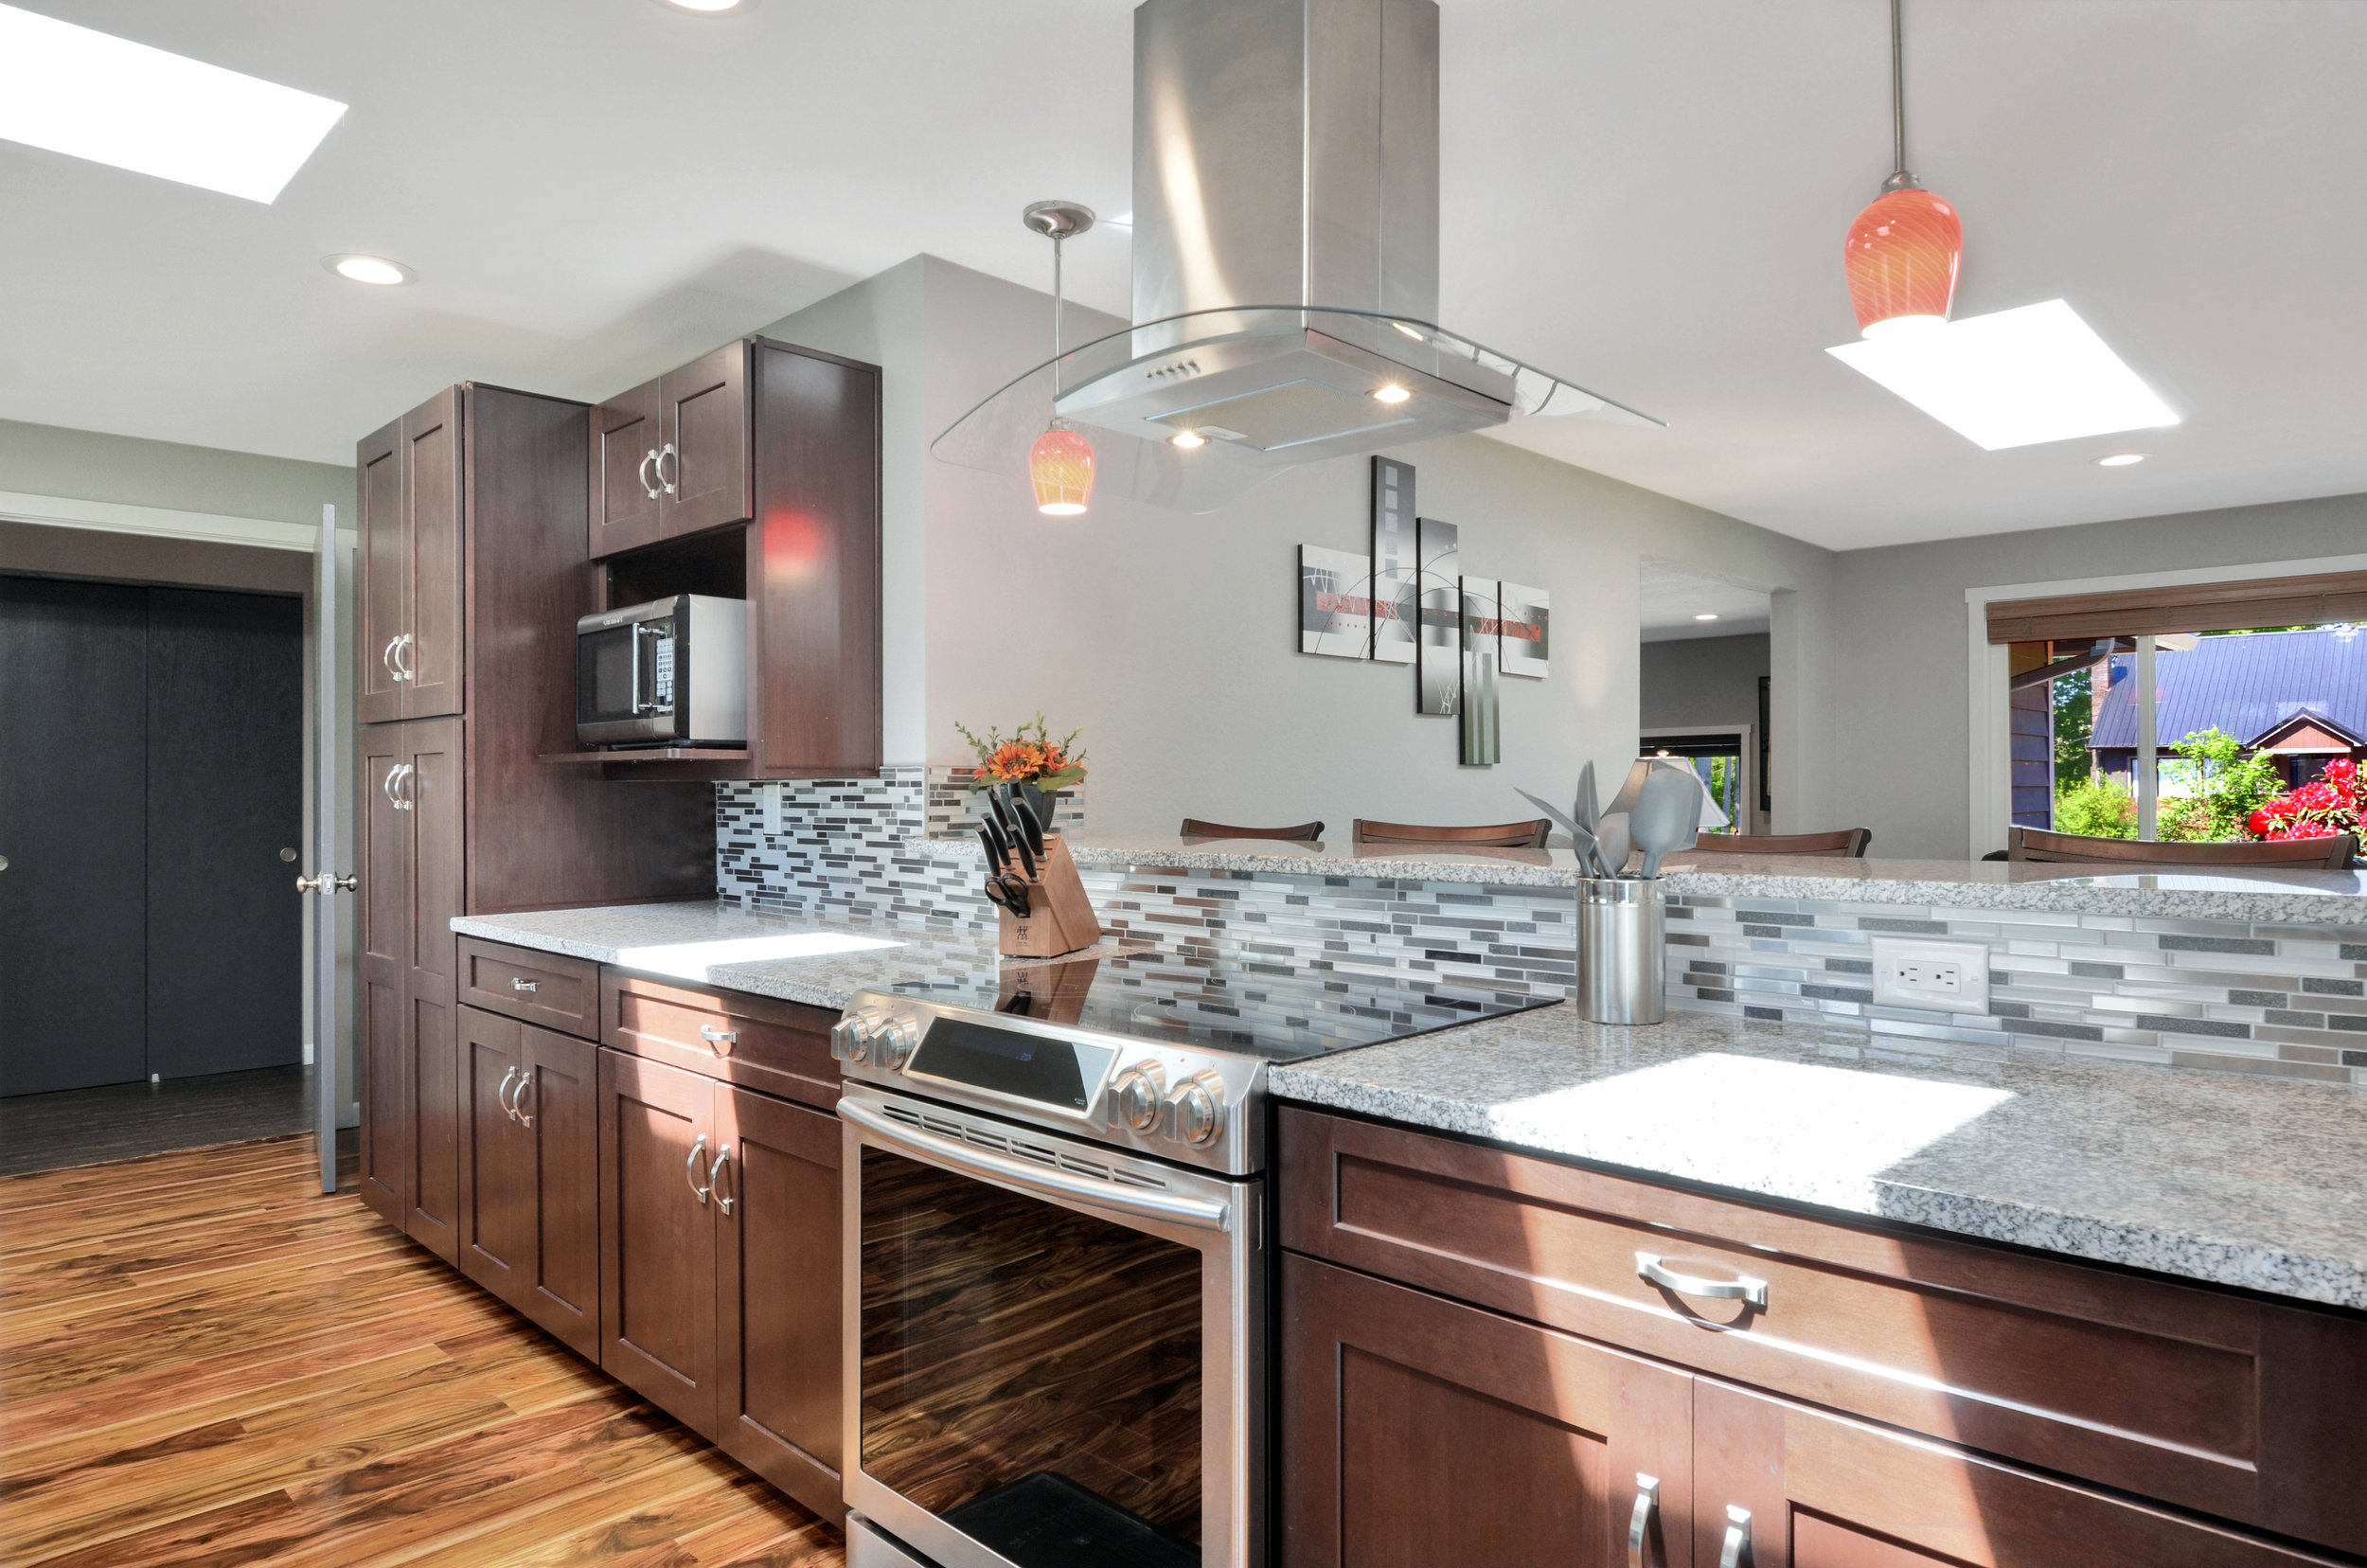 The remodeled kitchen features 2 skylights, slow-close drawers and cabinets, heat and stain resistant granite slab counters (with 10 year warranty), tile back splash, hood vent, and a full set of stainless appliances (homeowner can provide booklets for most of the appliances in the house).